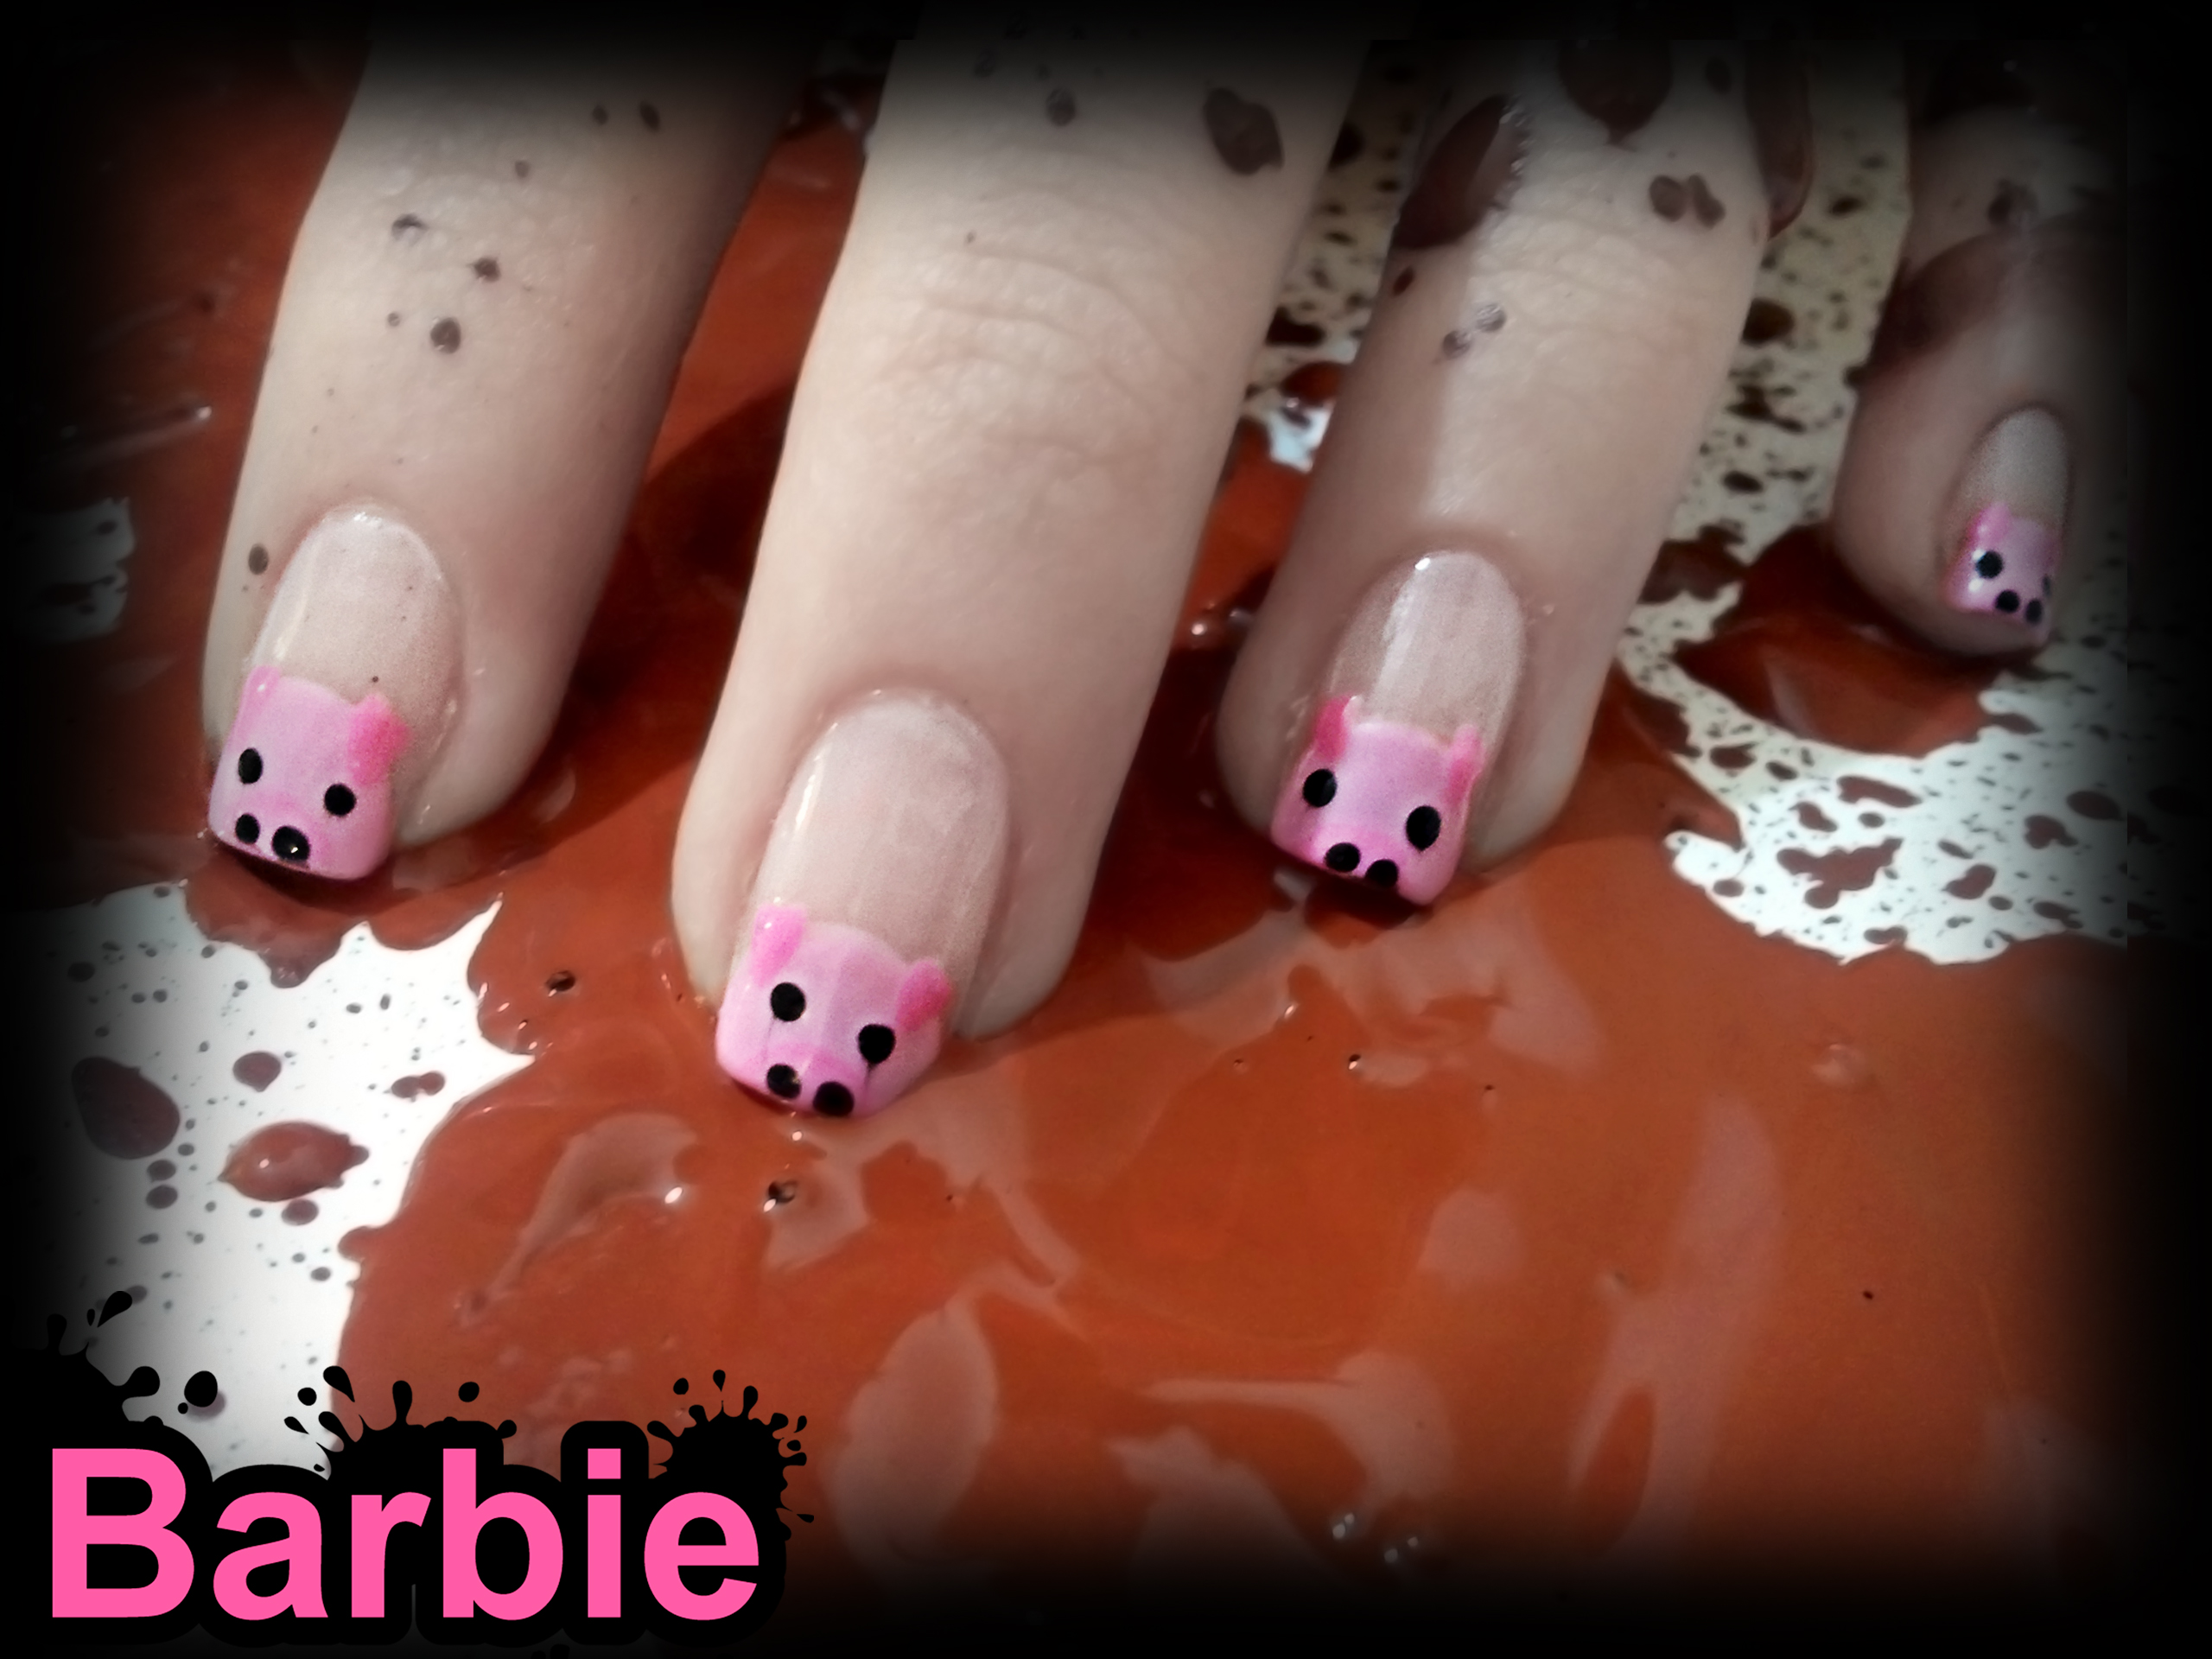 Piggy Nails by BarbieNailArt on DeviantArt